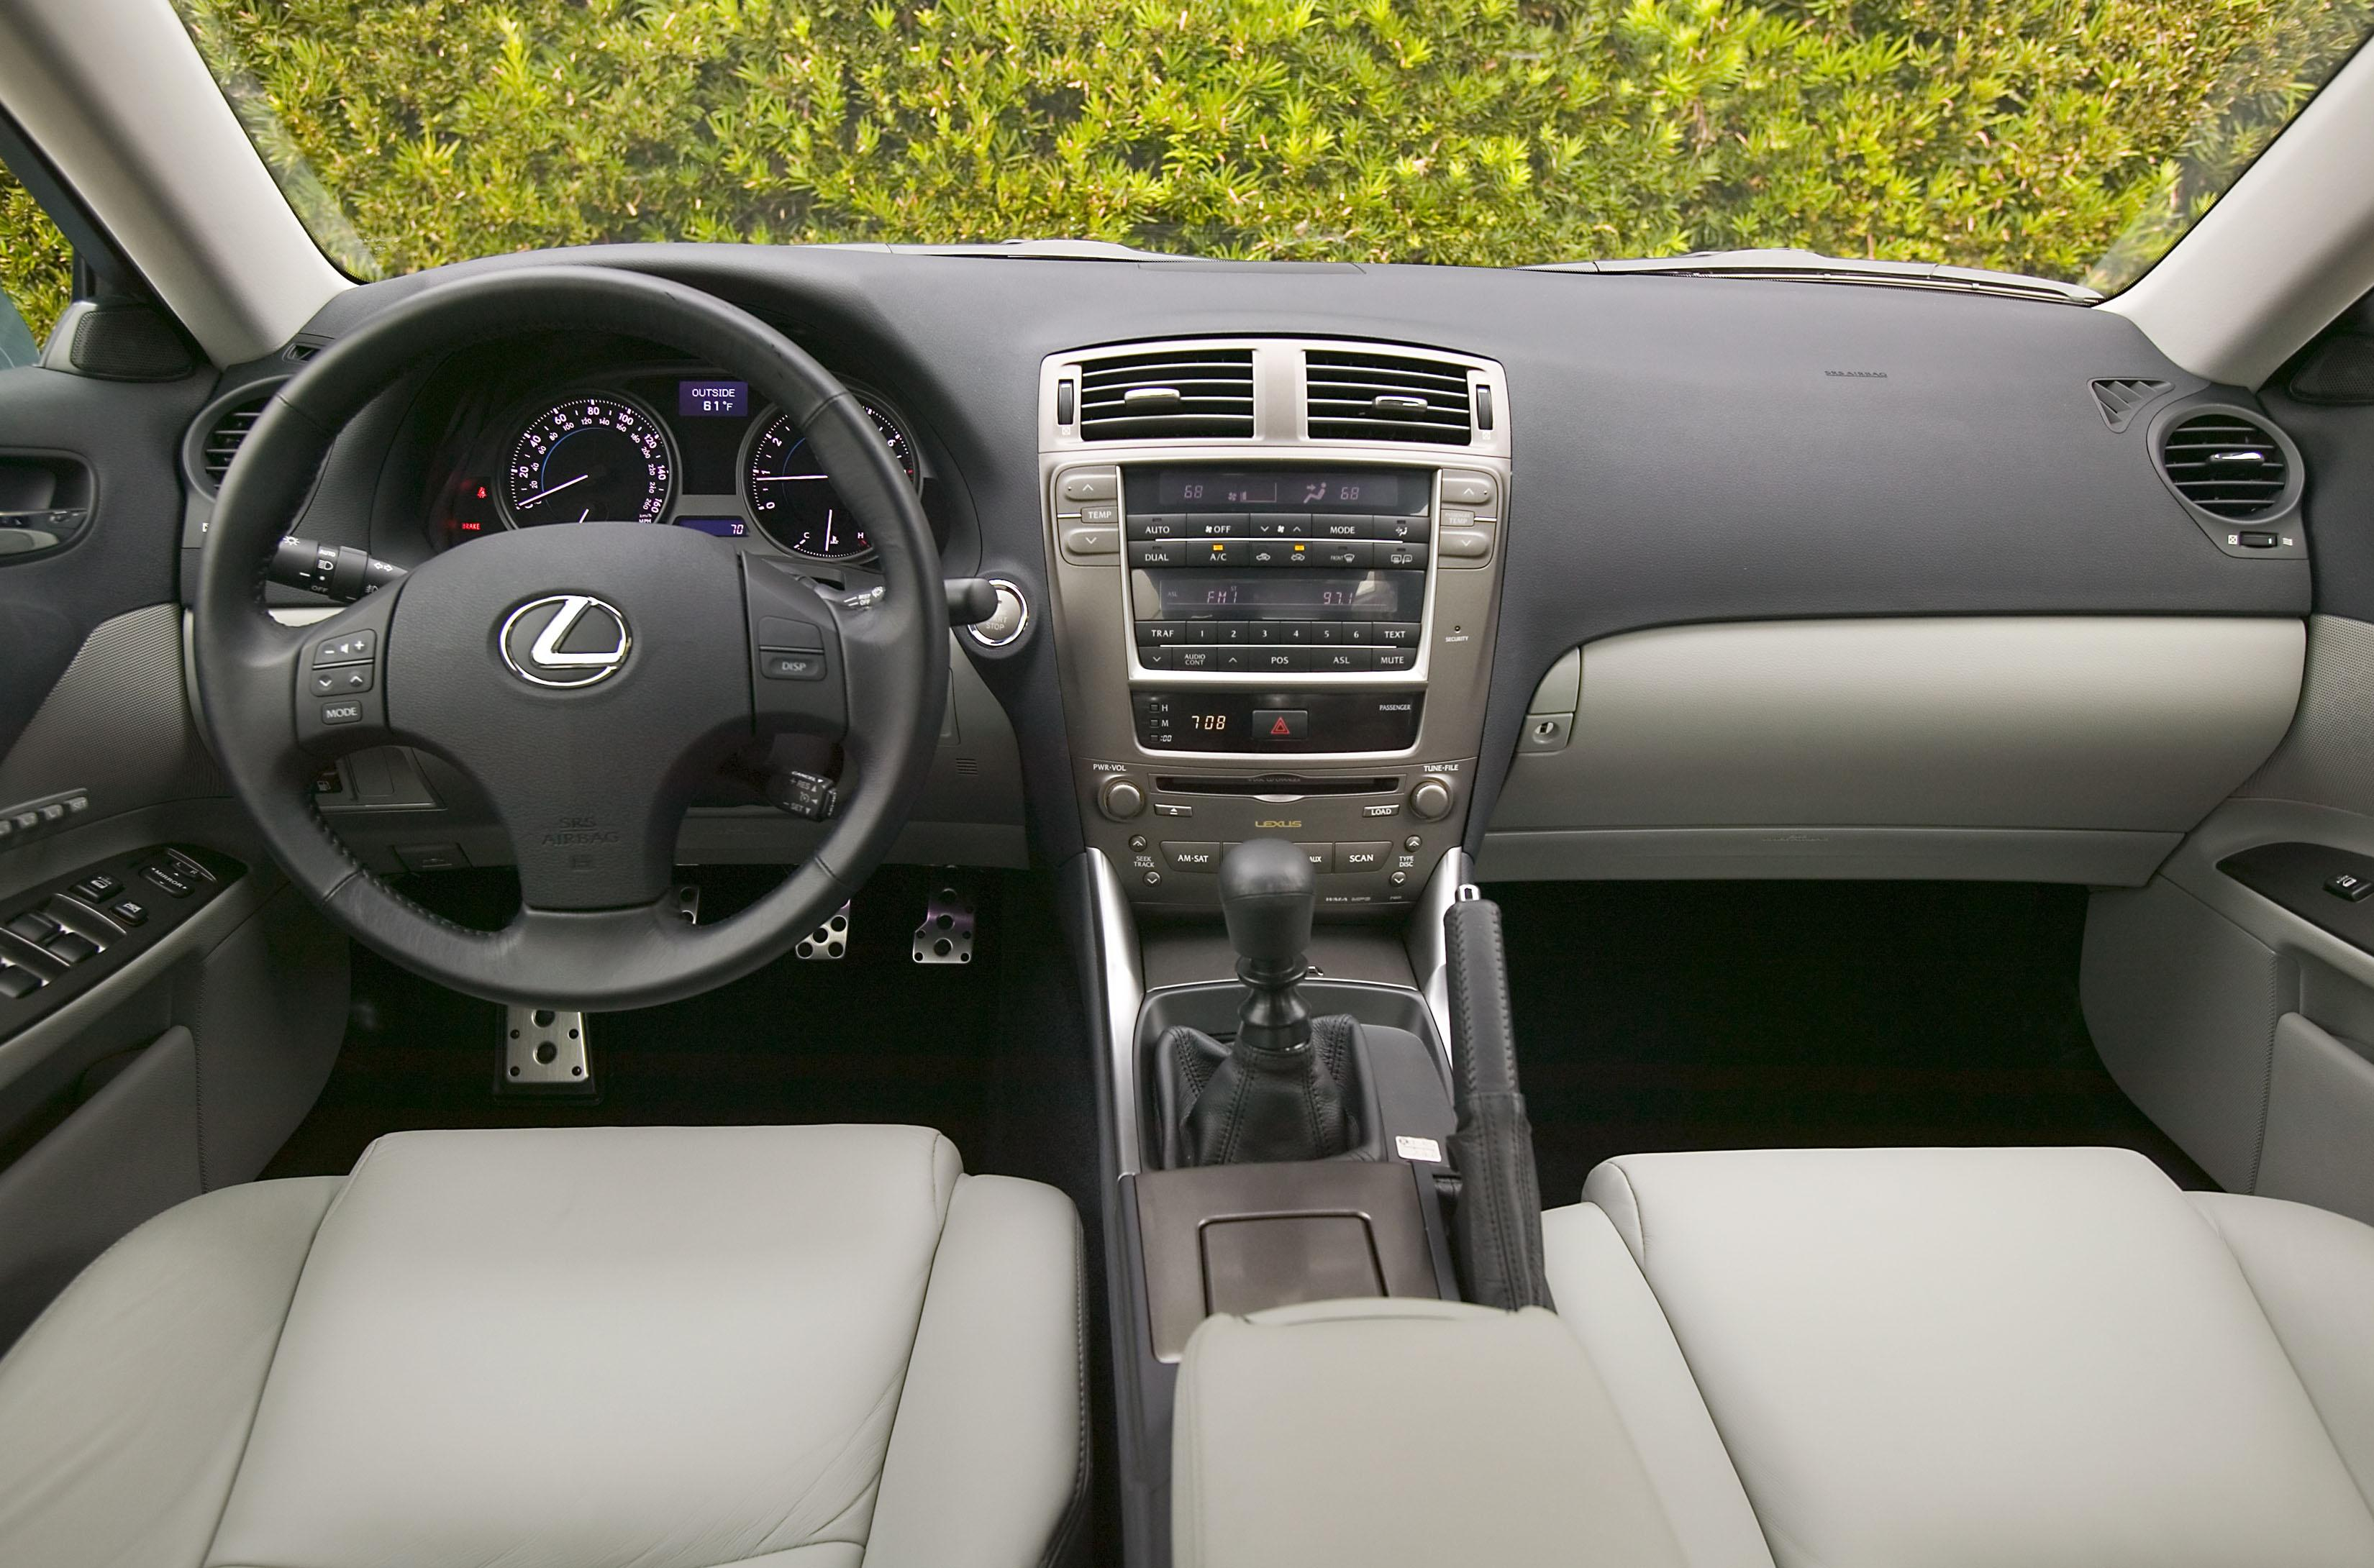 2007 Lexus IS 250 | Top Speed. »